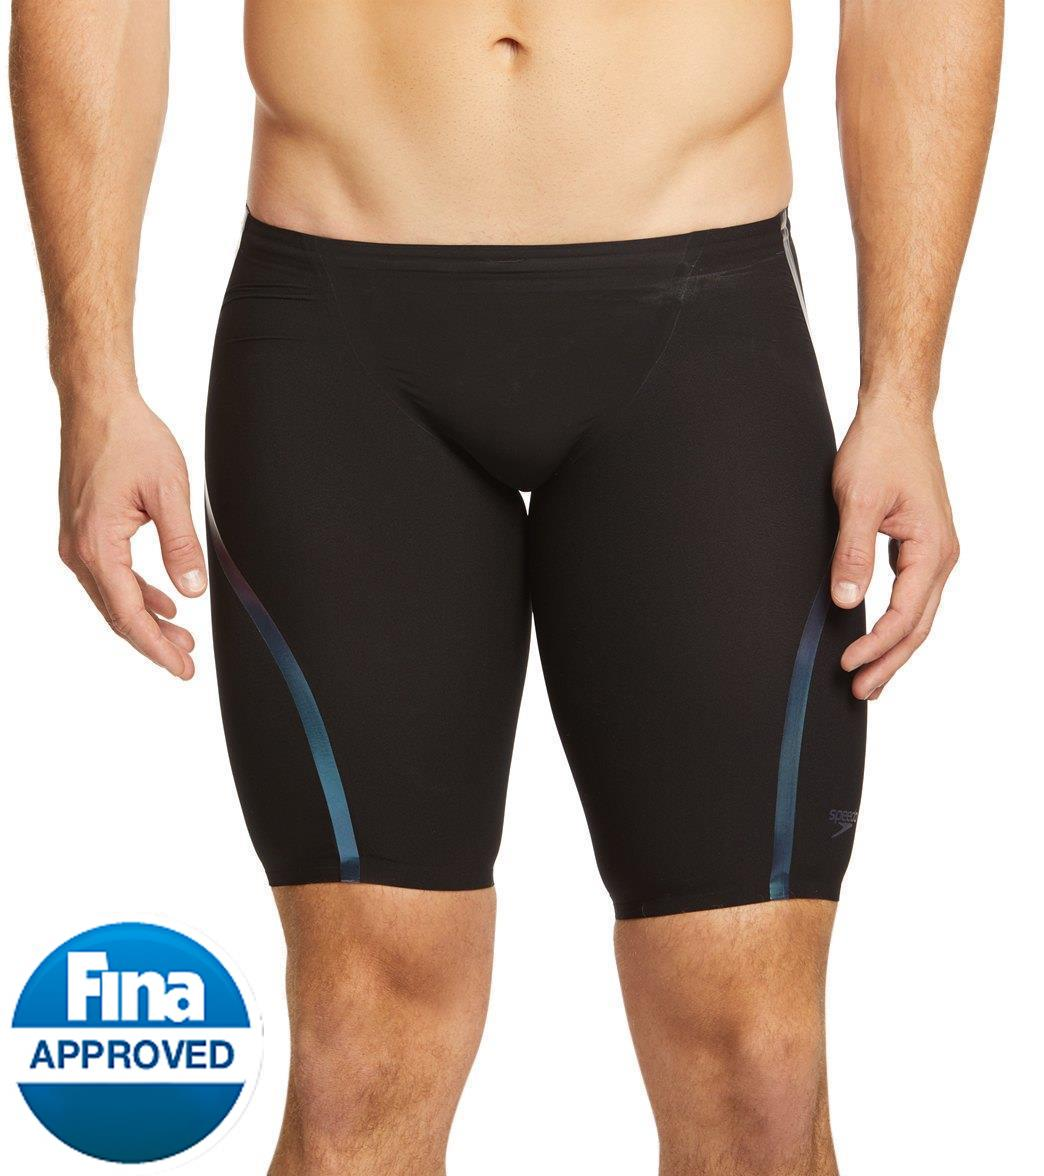 8f3fa5f935 Speedo Men's LZR Racer X Jammer Tech Suit Swimsuit at SwimOutlet.com - Free  Shipping